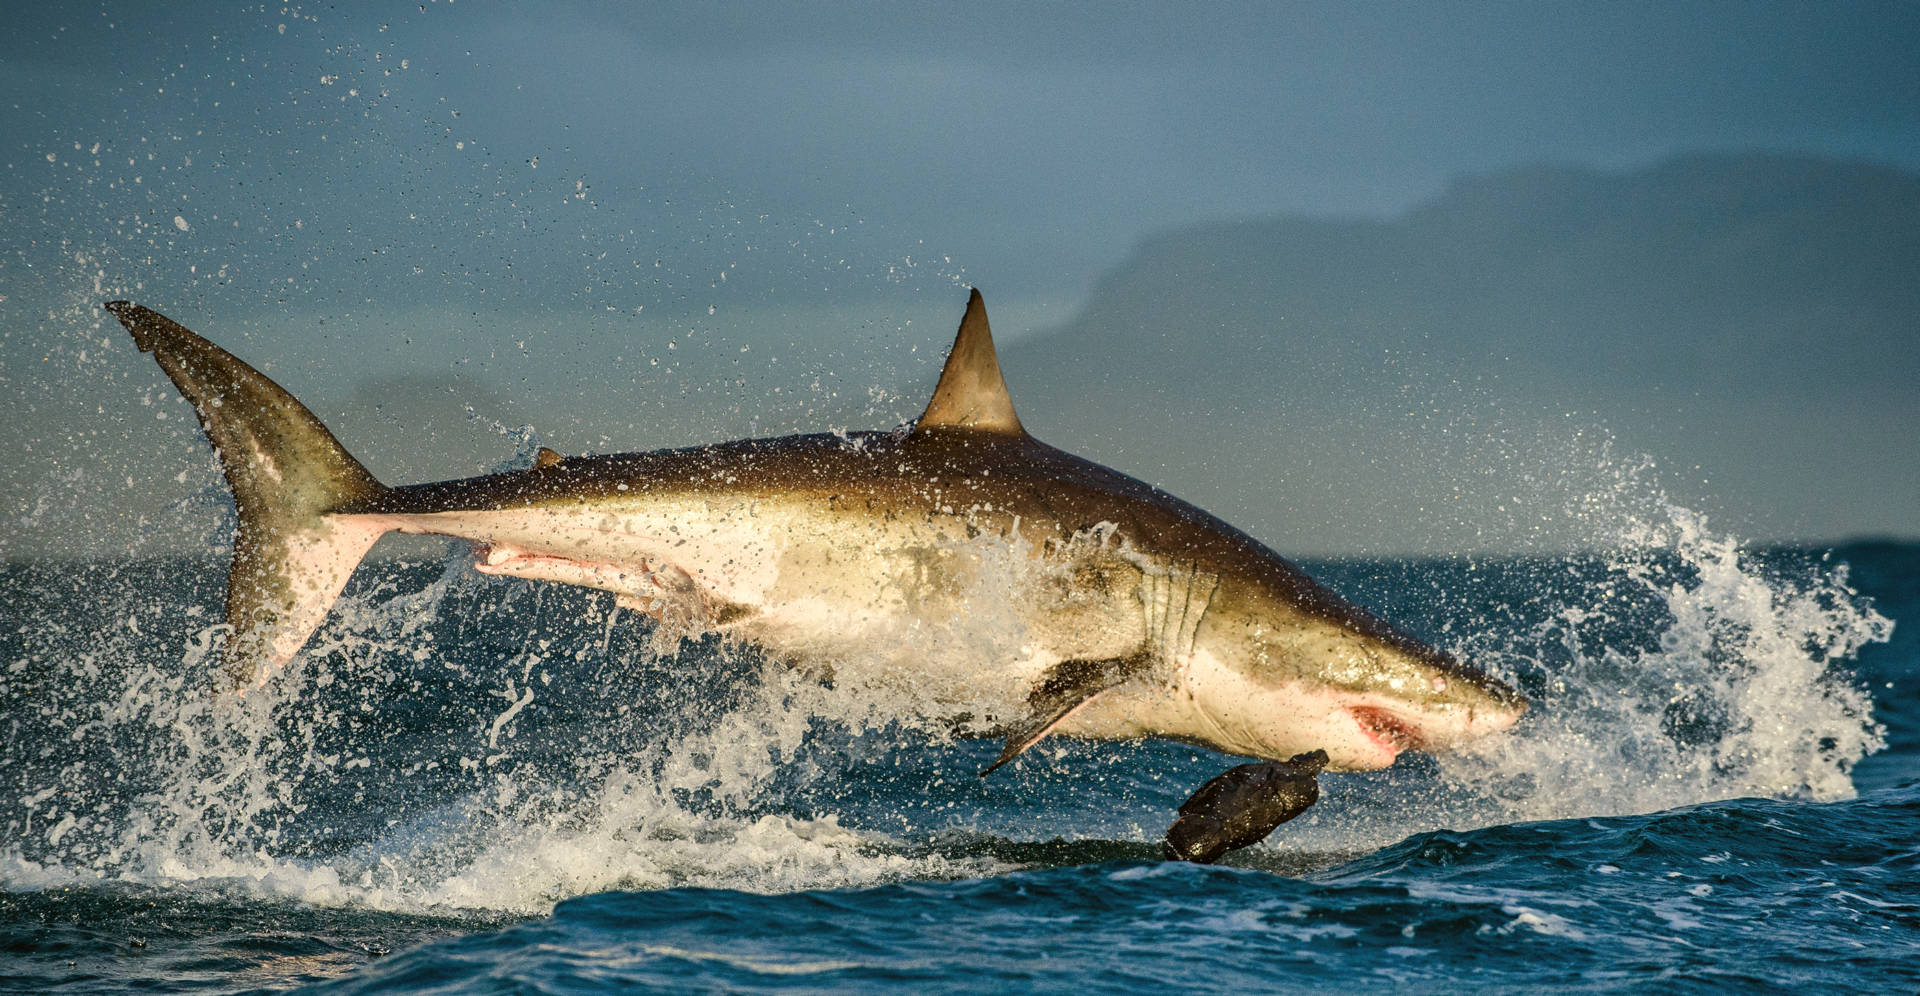 A White Shark leaps out of the water.